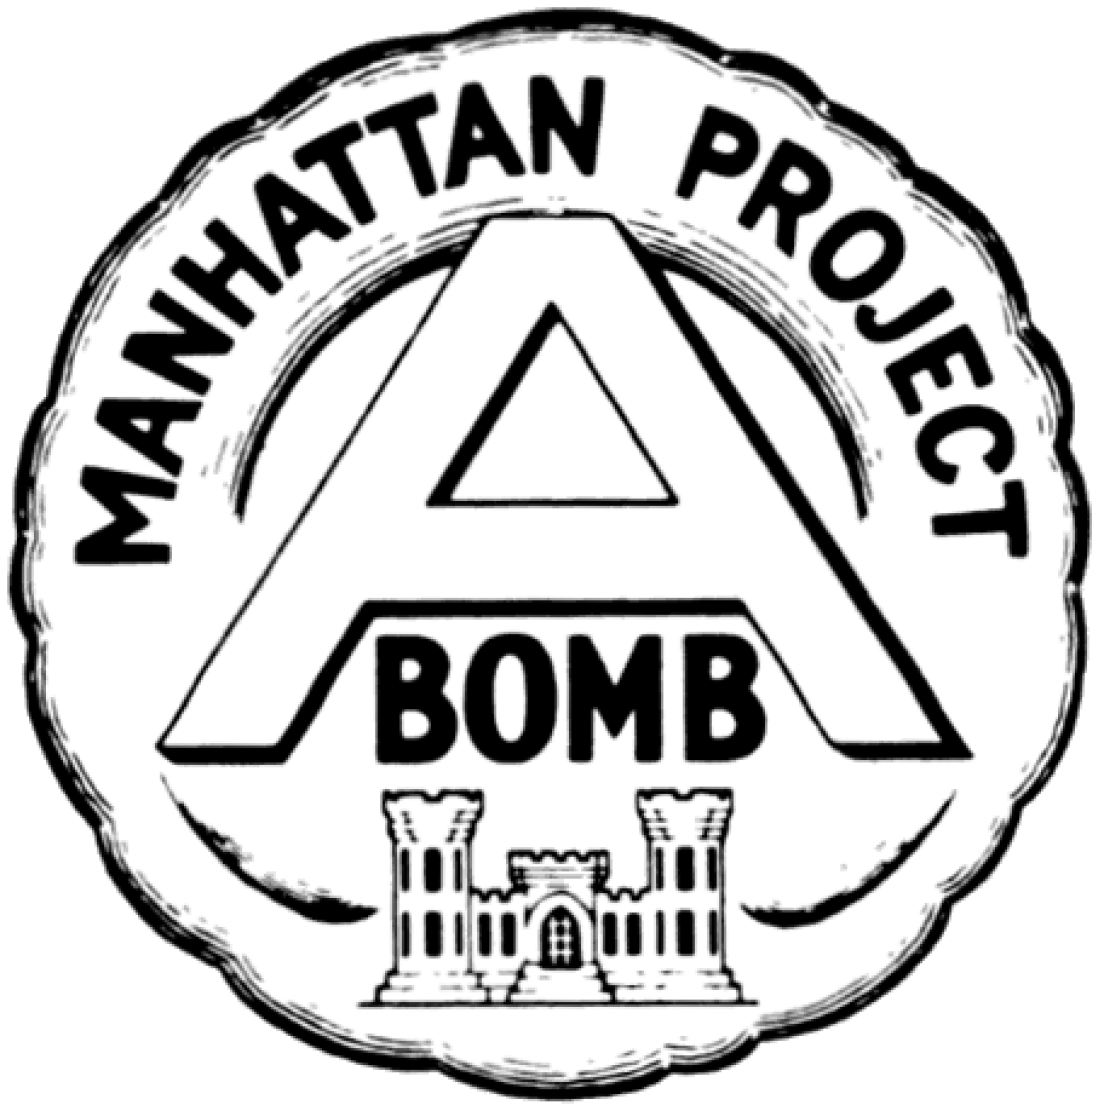 """Massive Cover-up Begins After """"Final Proof"""" Shows Atomic Bomb Traded To USForNazi Safety"""